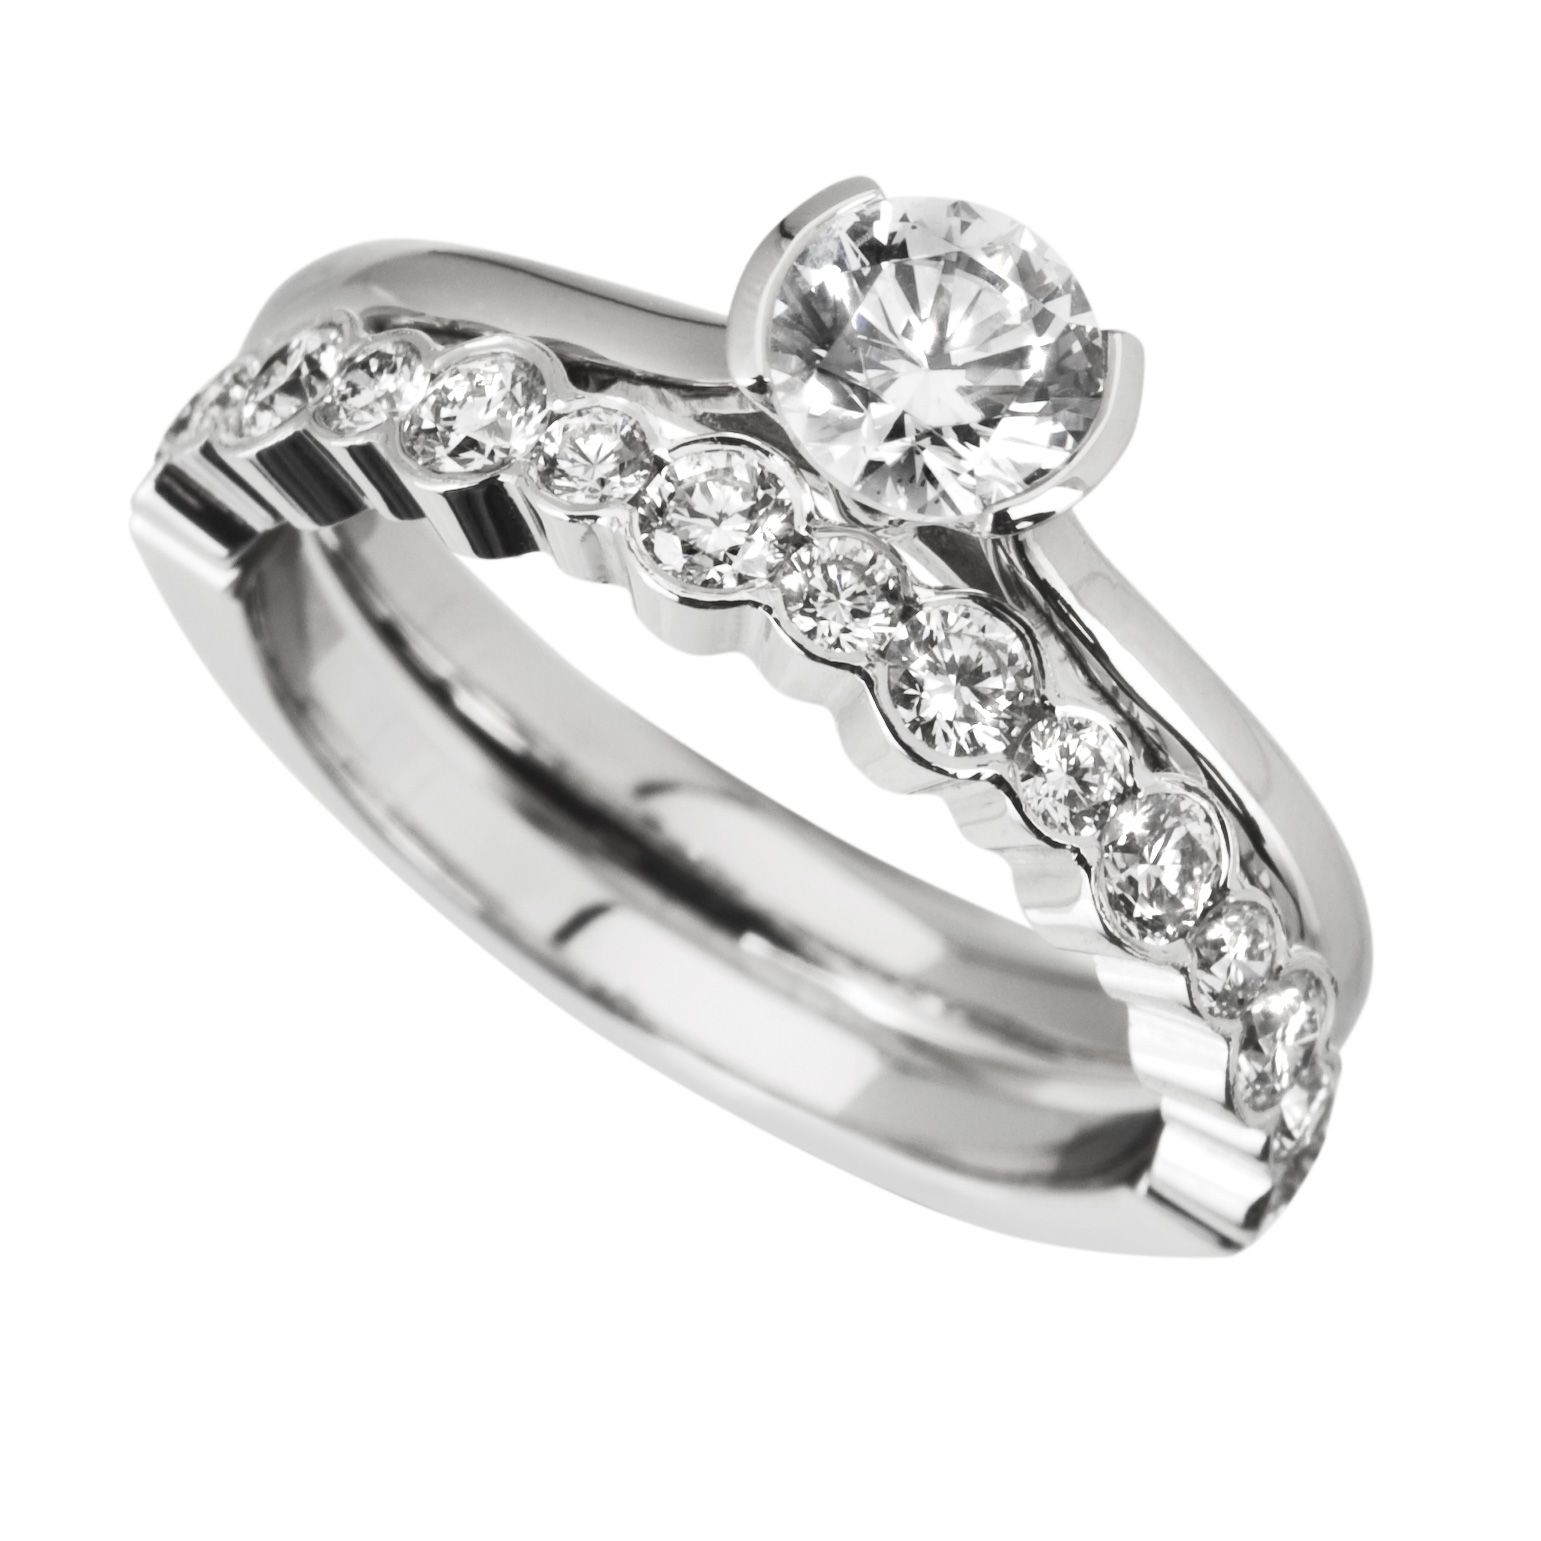 images of wedding rings sets rub over engagement ring with matching diamond - Wedding Band And Engagement Ring Set